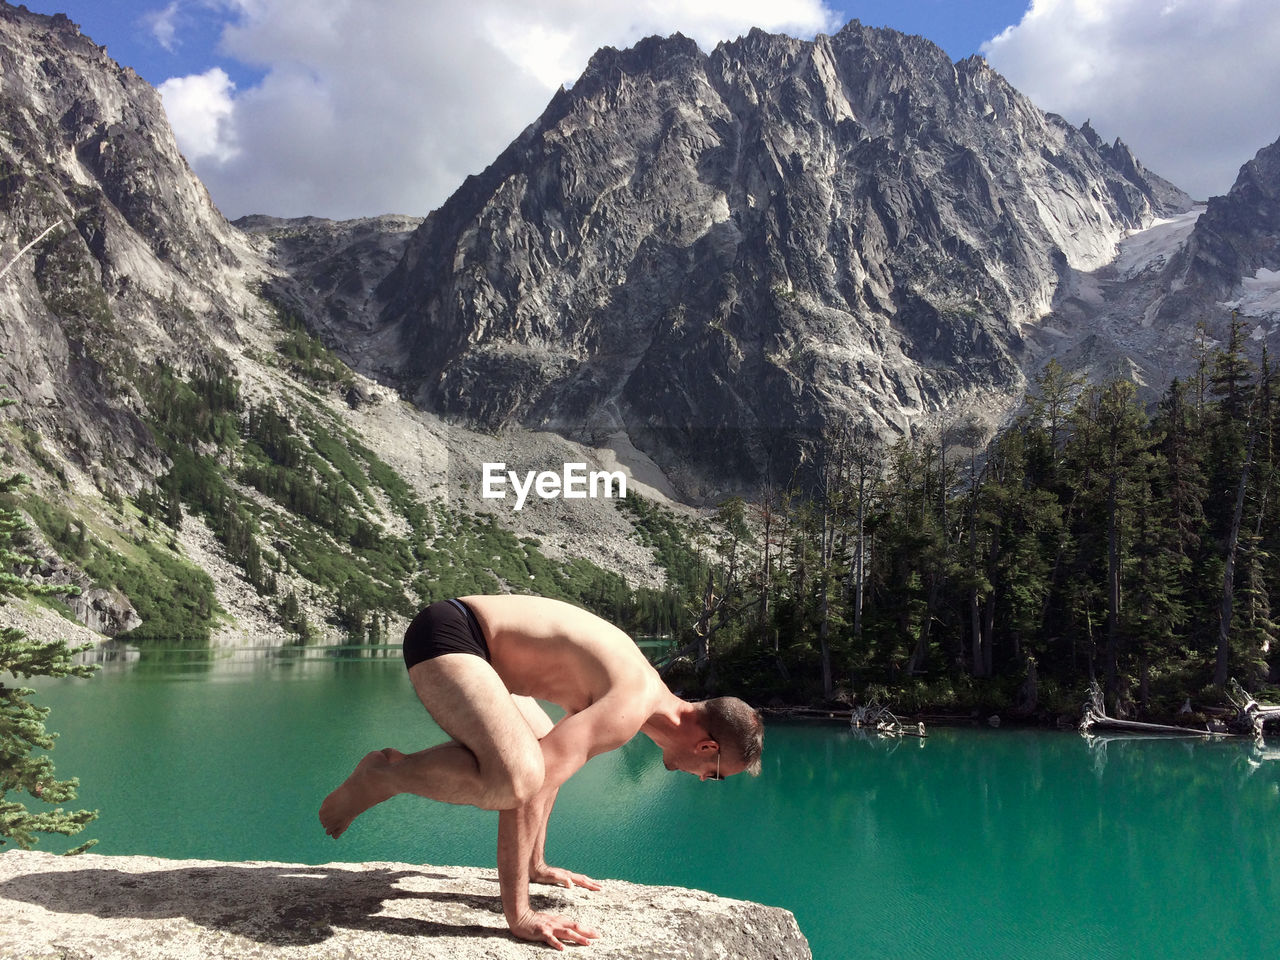 Side View Of Shirtless Man Practicing Yoga On Rock Against Dragontail Peak